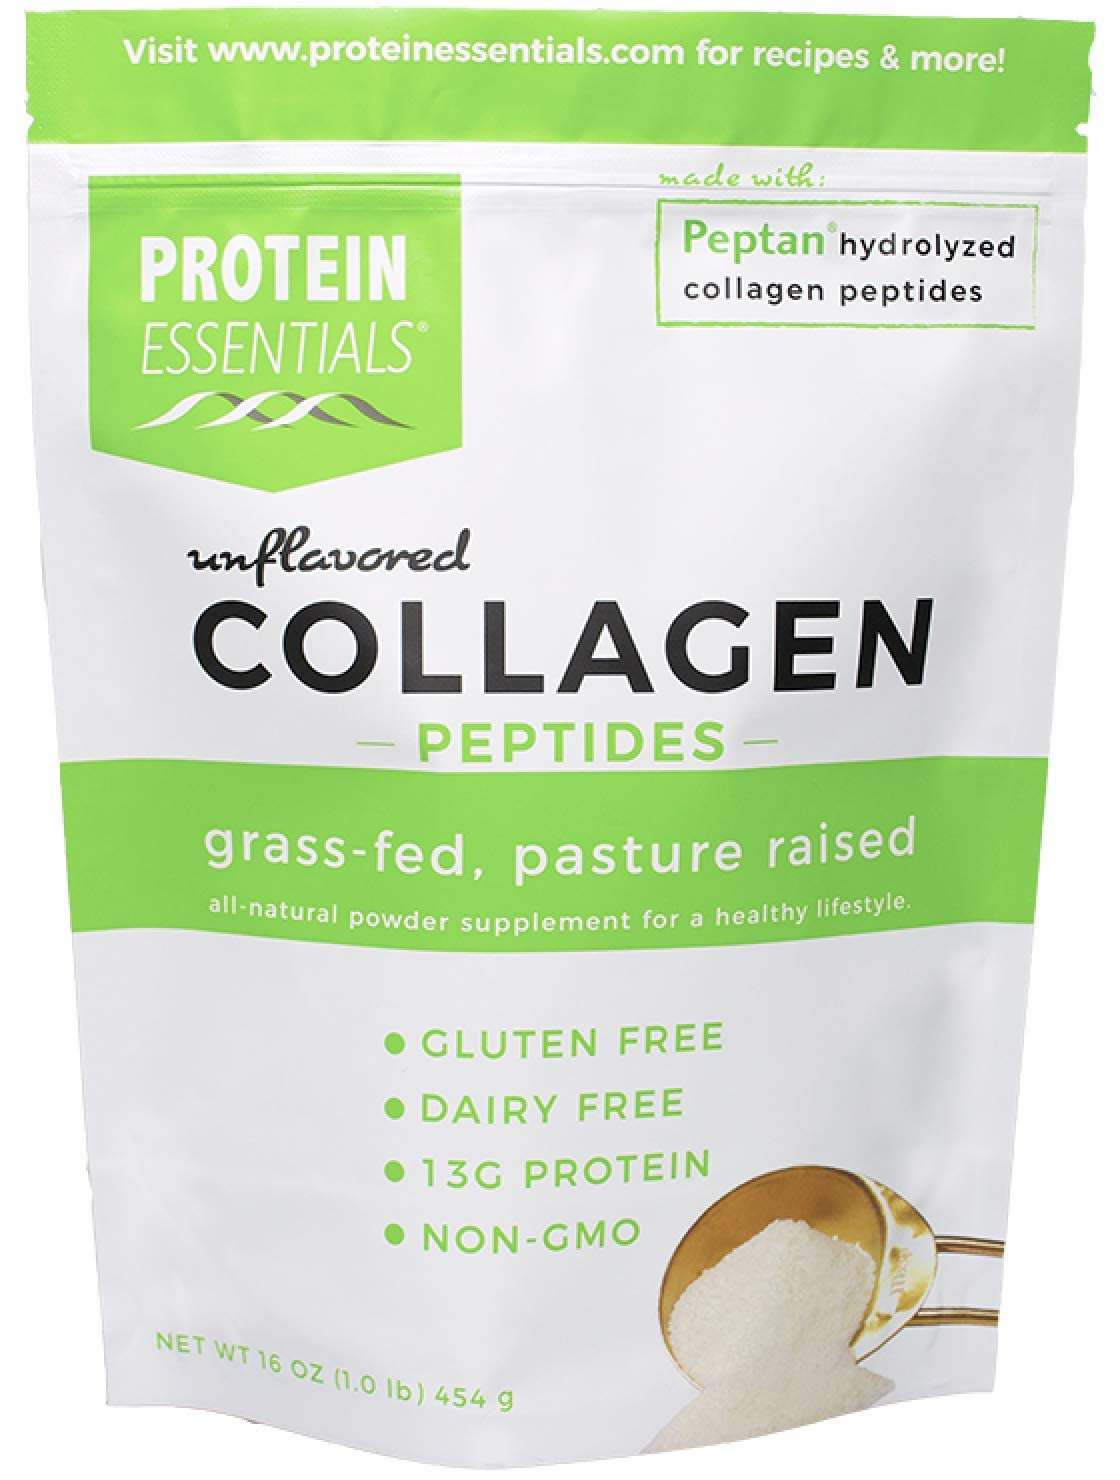 Protein Essentials Premium Collagen, Hydrolyzed Peptides Powder, NonGMO, Unflavored, Gluten & Dairy